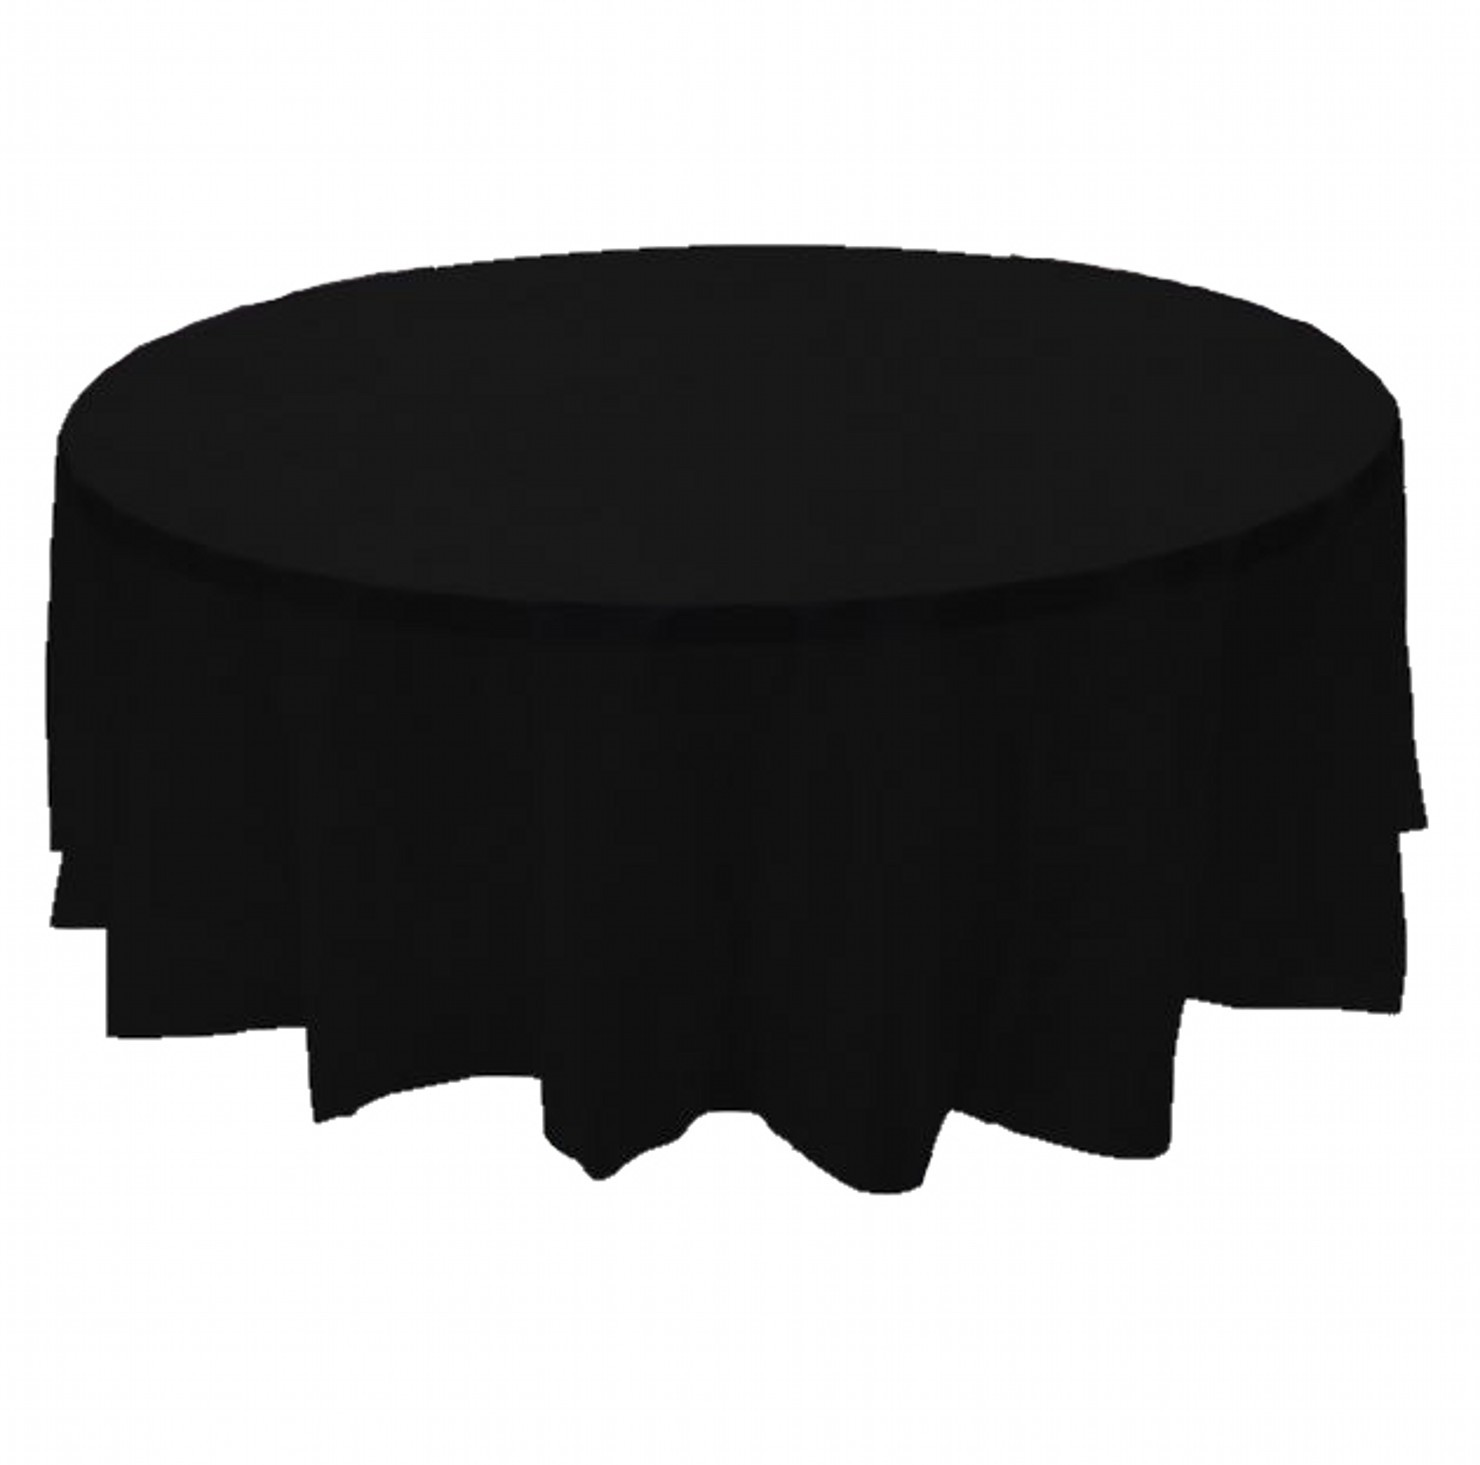 "2 BLACK Plastic round tablecloths 84"" diameter table cover"